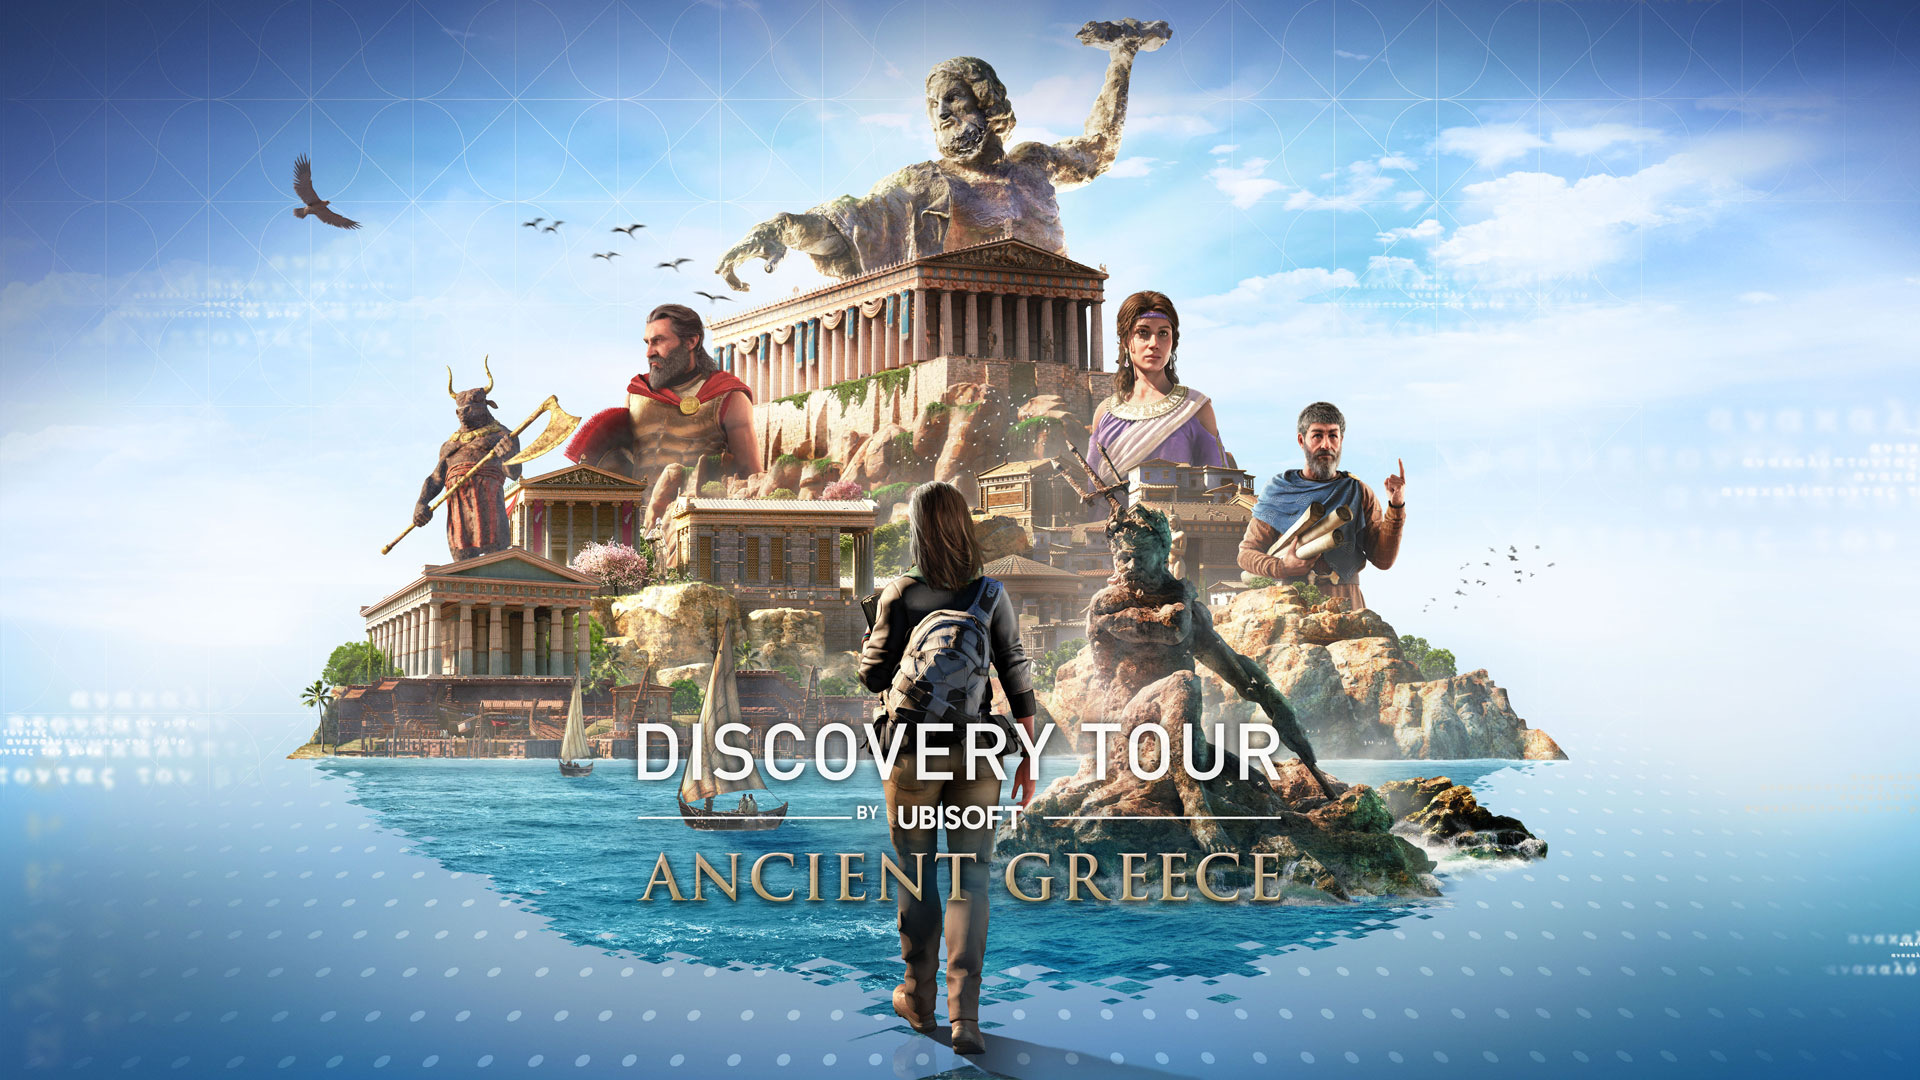 https://ubistatic19-a.akamaihd.net/marketingresource/ja-jp/assassins-creed/assassins-creed-odyssey/news/images/acd_keyart_discoverytour_wide_rgb_354998.jpg